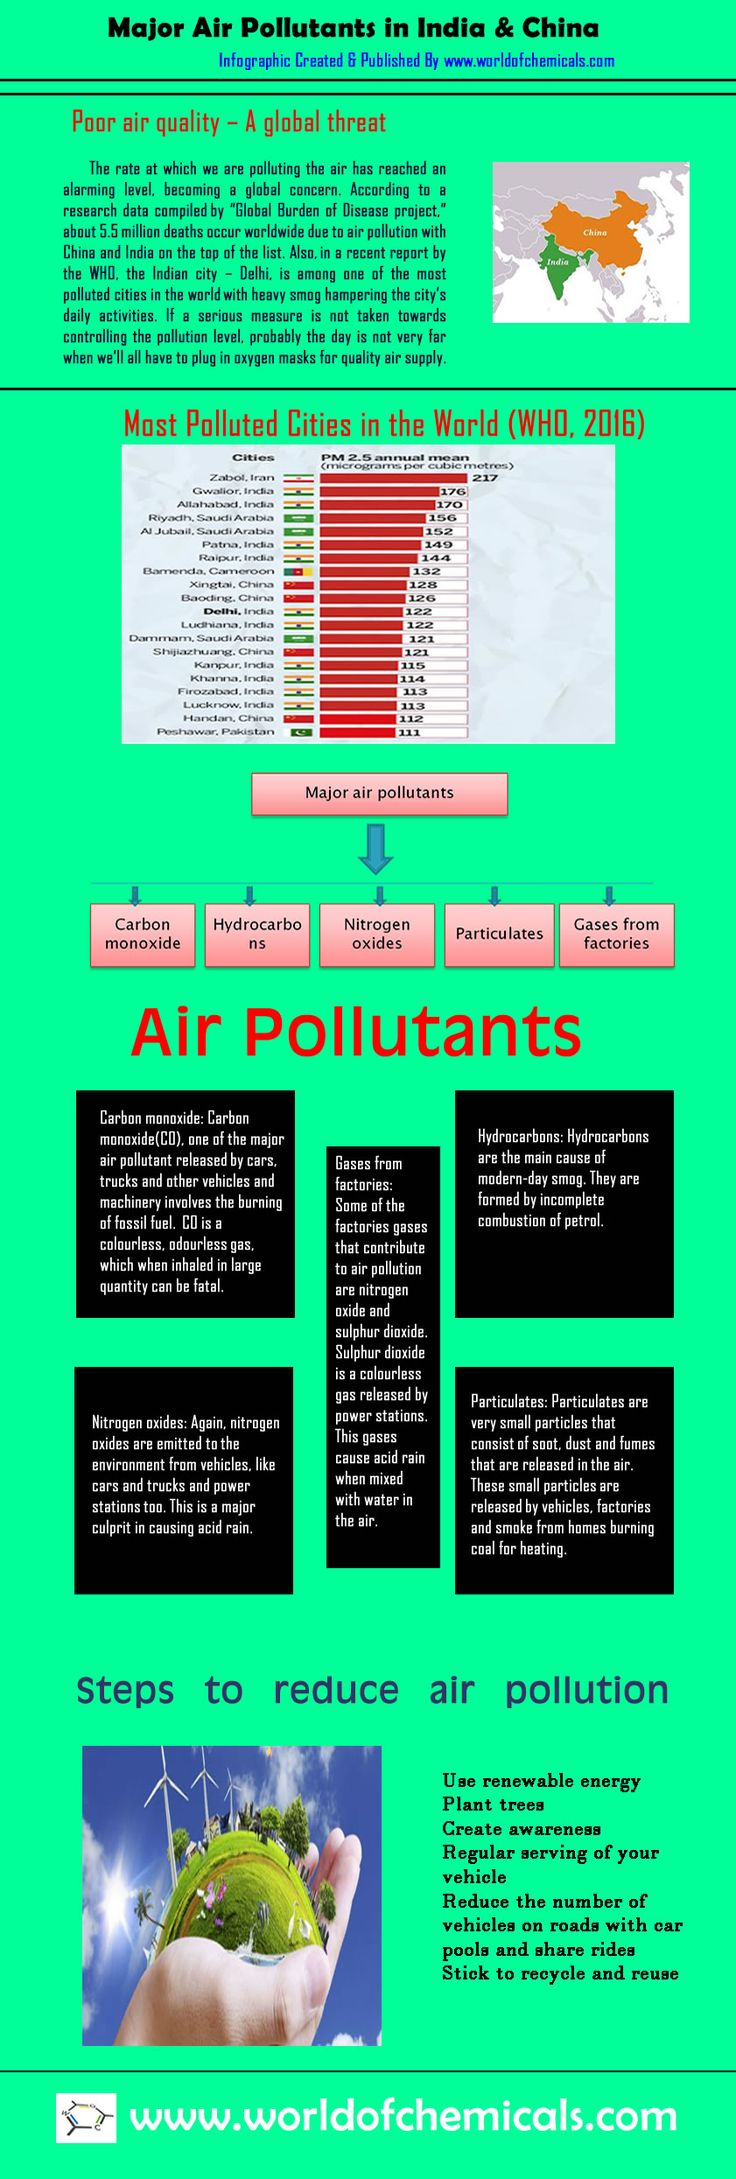 Major Air Pollutants in India & China | Steps to Reduce Air Pollution